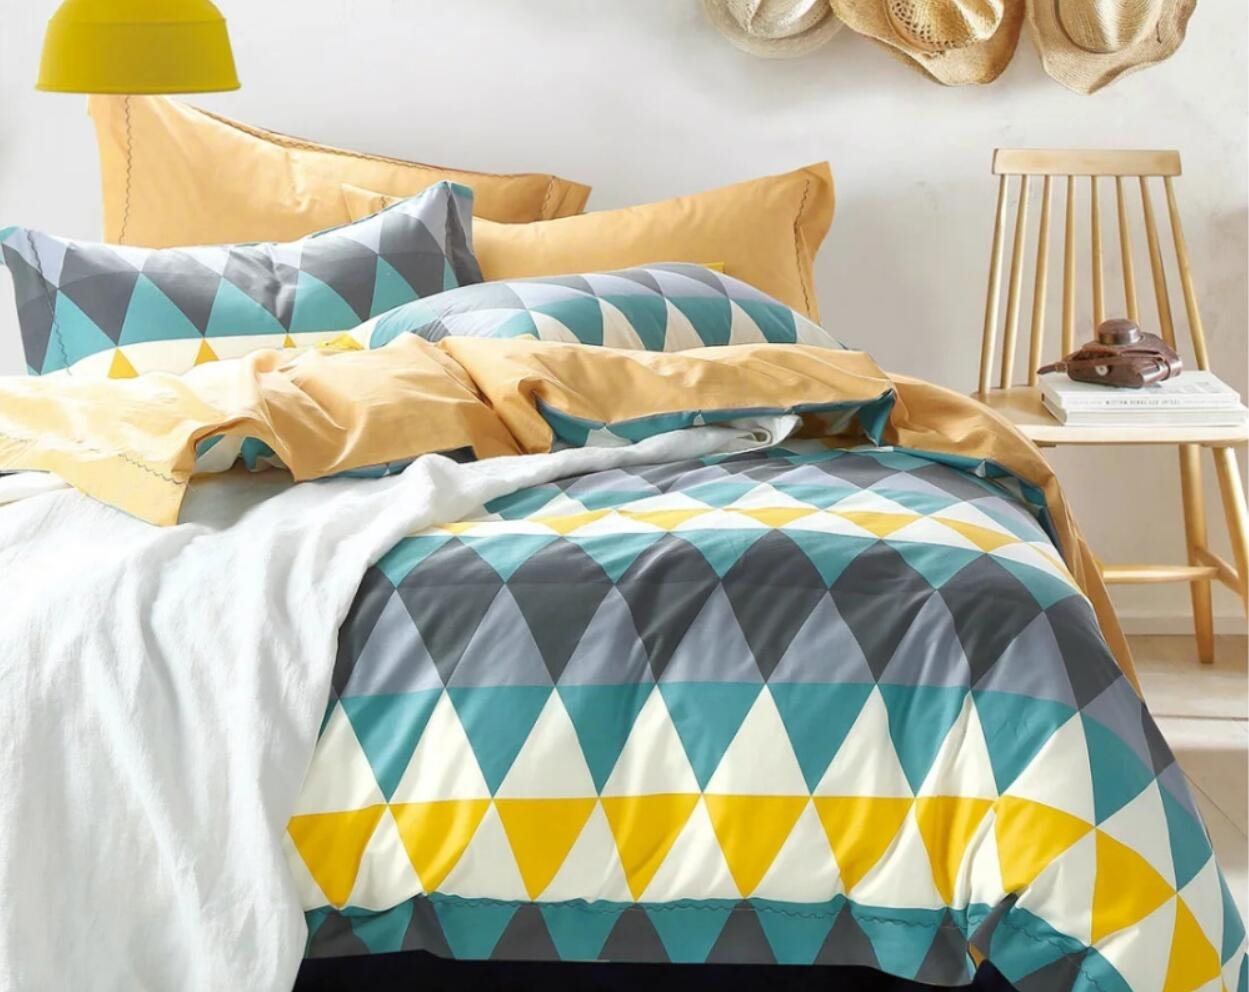 Modern Chevron Duvet Cover Set Blue And Gray Geometric Design Reversible Zig Zag Printed 100 Percent Cotton 3 Piece Bedding Set (Queen, Teal) by Eikei Home